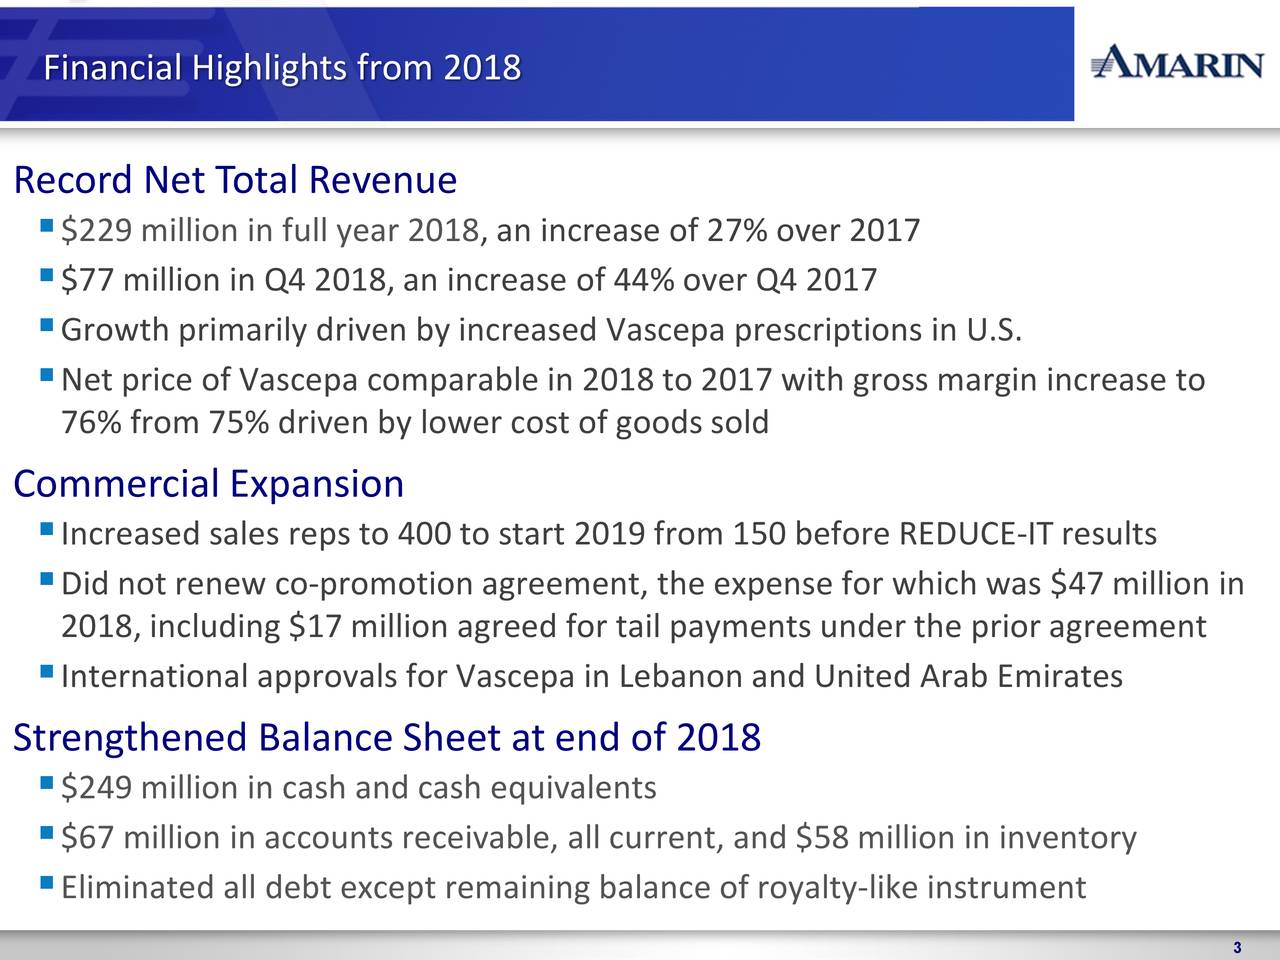 Record Net Total Revenue $229 million in full year 2018, an increase of 27% over 2017 $77 million in Q4 2018, an increase of 44% over Q4 2017 Growth primarily driven by increased Vascepa prescriptions in U.S. Net price of Vascepa comparable in 2018 to 2017 with gross margin increase to 76% from 75% driven by lower cost of goods sold Commercial Expansion Increased sales reps to 400 to start 2019 from 150 before REDUCE-IT results Did not renew co-promotion agreement, the expense for which was $47 million in 2018, including $17 million agreed for tail payments under the prior agreement International approvals for Vascepa in Lebanon and United Arab Emirates Strengthened Balance Sheet at end of 2018 $249 million in cash and cash equivalents $67 million in accounts receivable, all current, and $58 million in inventory Eliminated all debt except remaining balance of royalty-like instrument